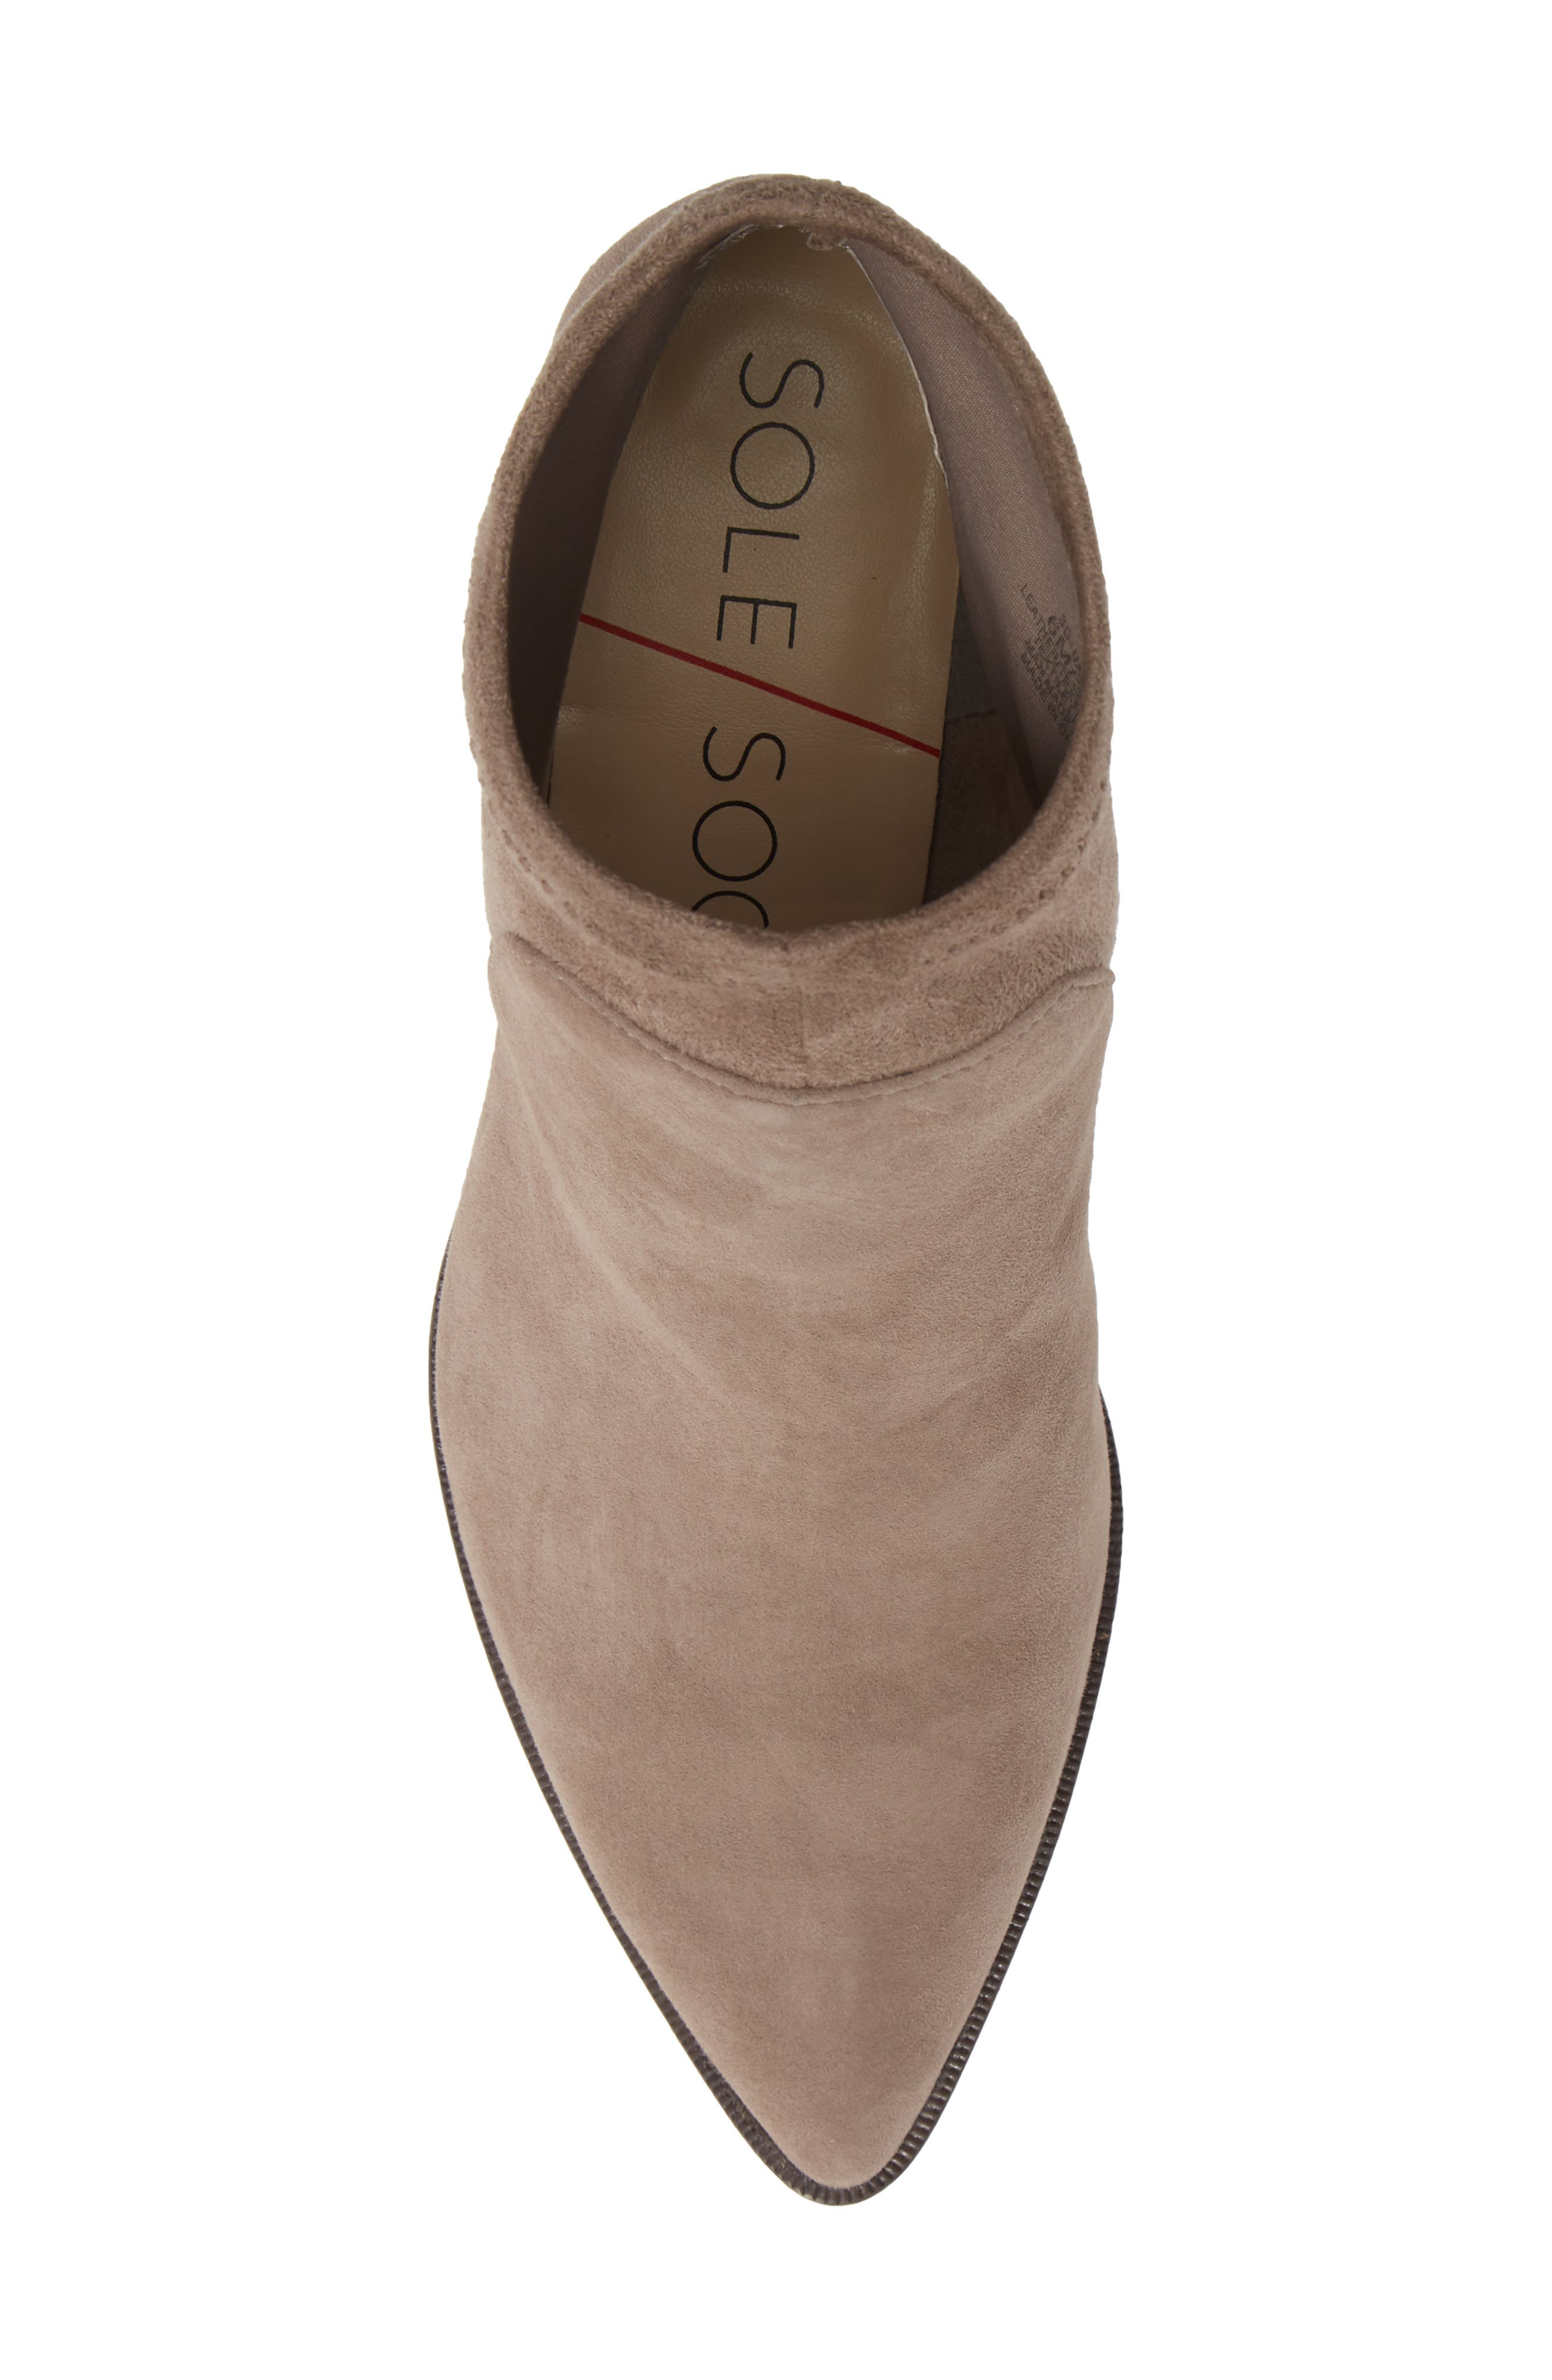 SOLE SOCIETY, Dawnina Bootie, Alternate thumbnail 5, color, PORCINI SUEDE